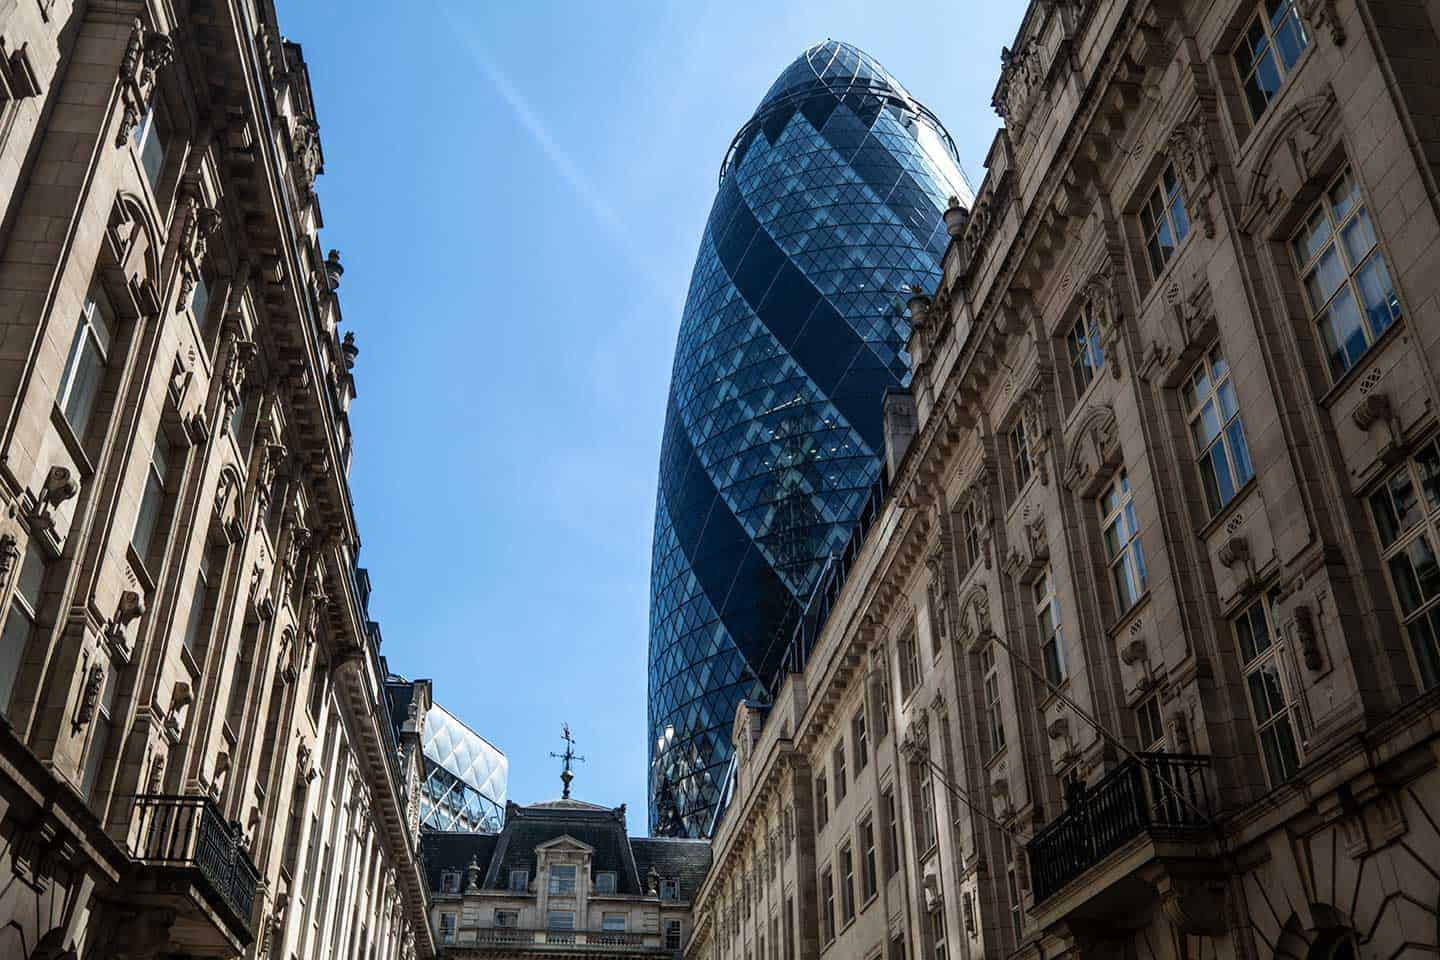 Image of the Gherkin building in London